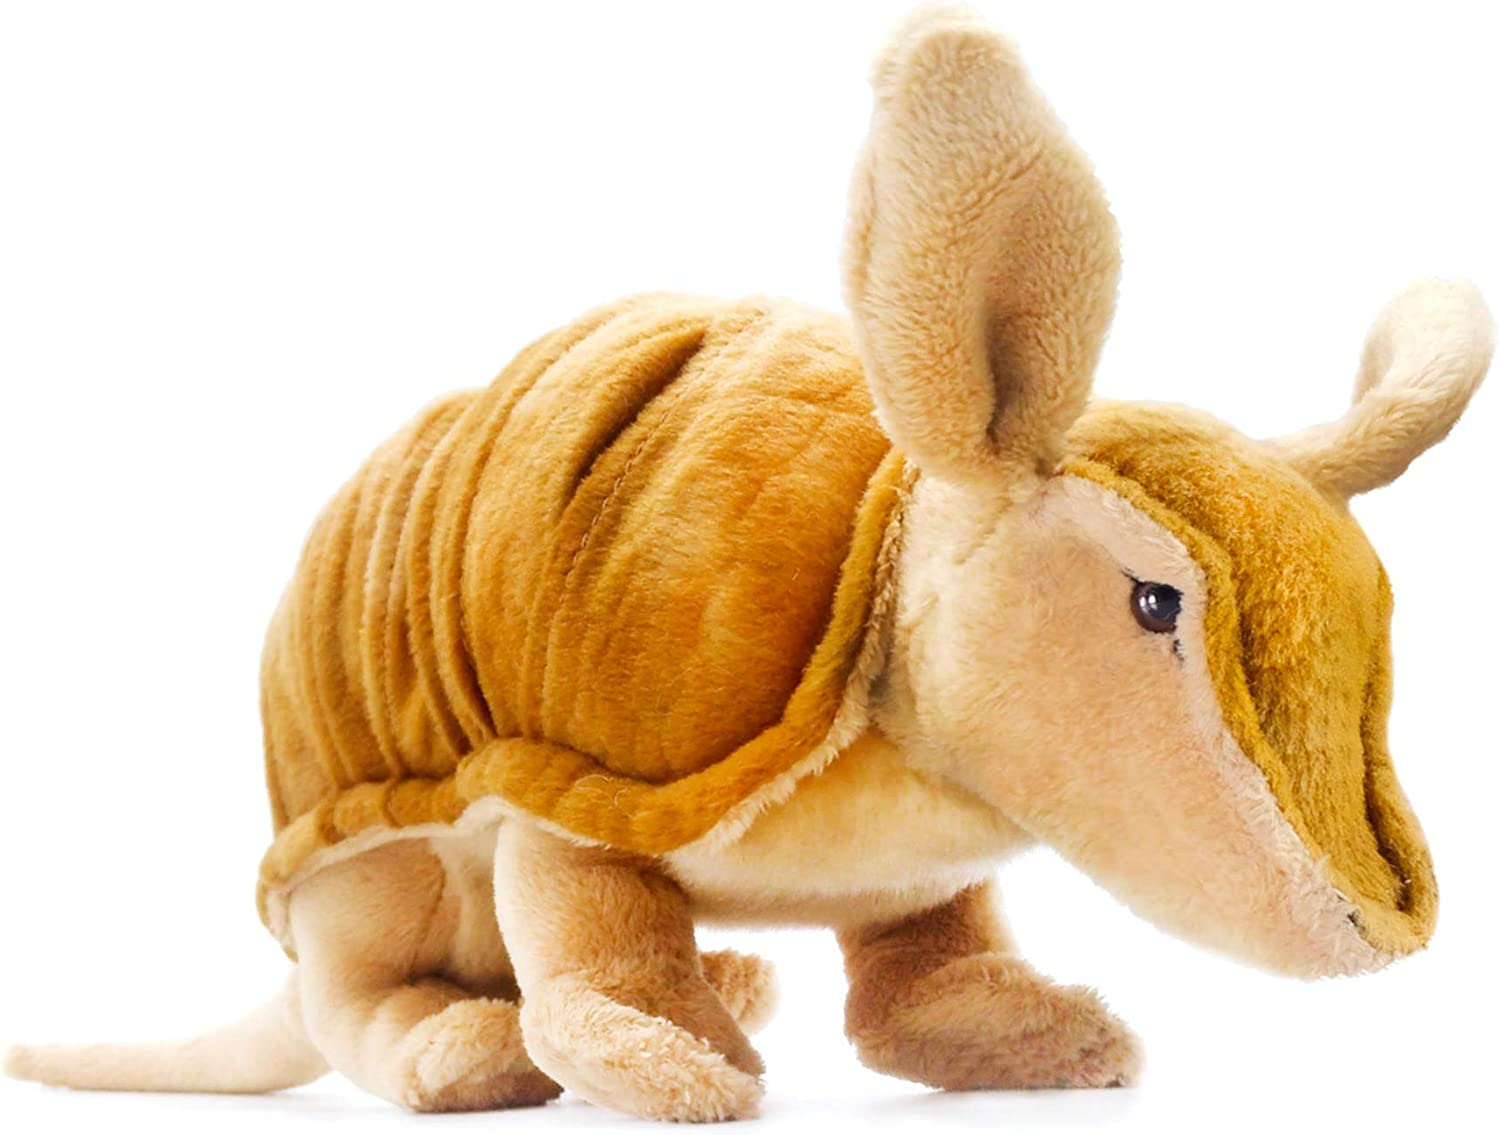 Mike the Armadillo   10 Inch (Without Tail) Stuffed Animal Plush   By VIAHART